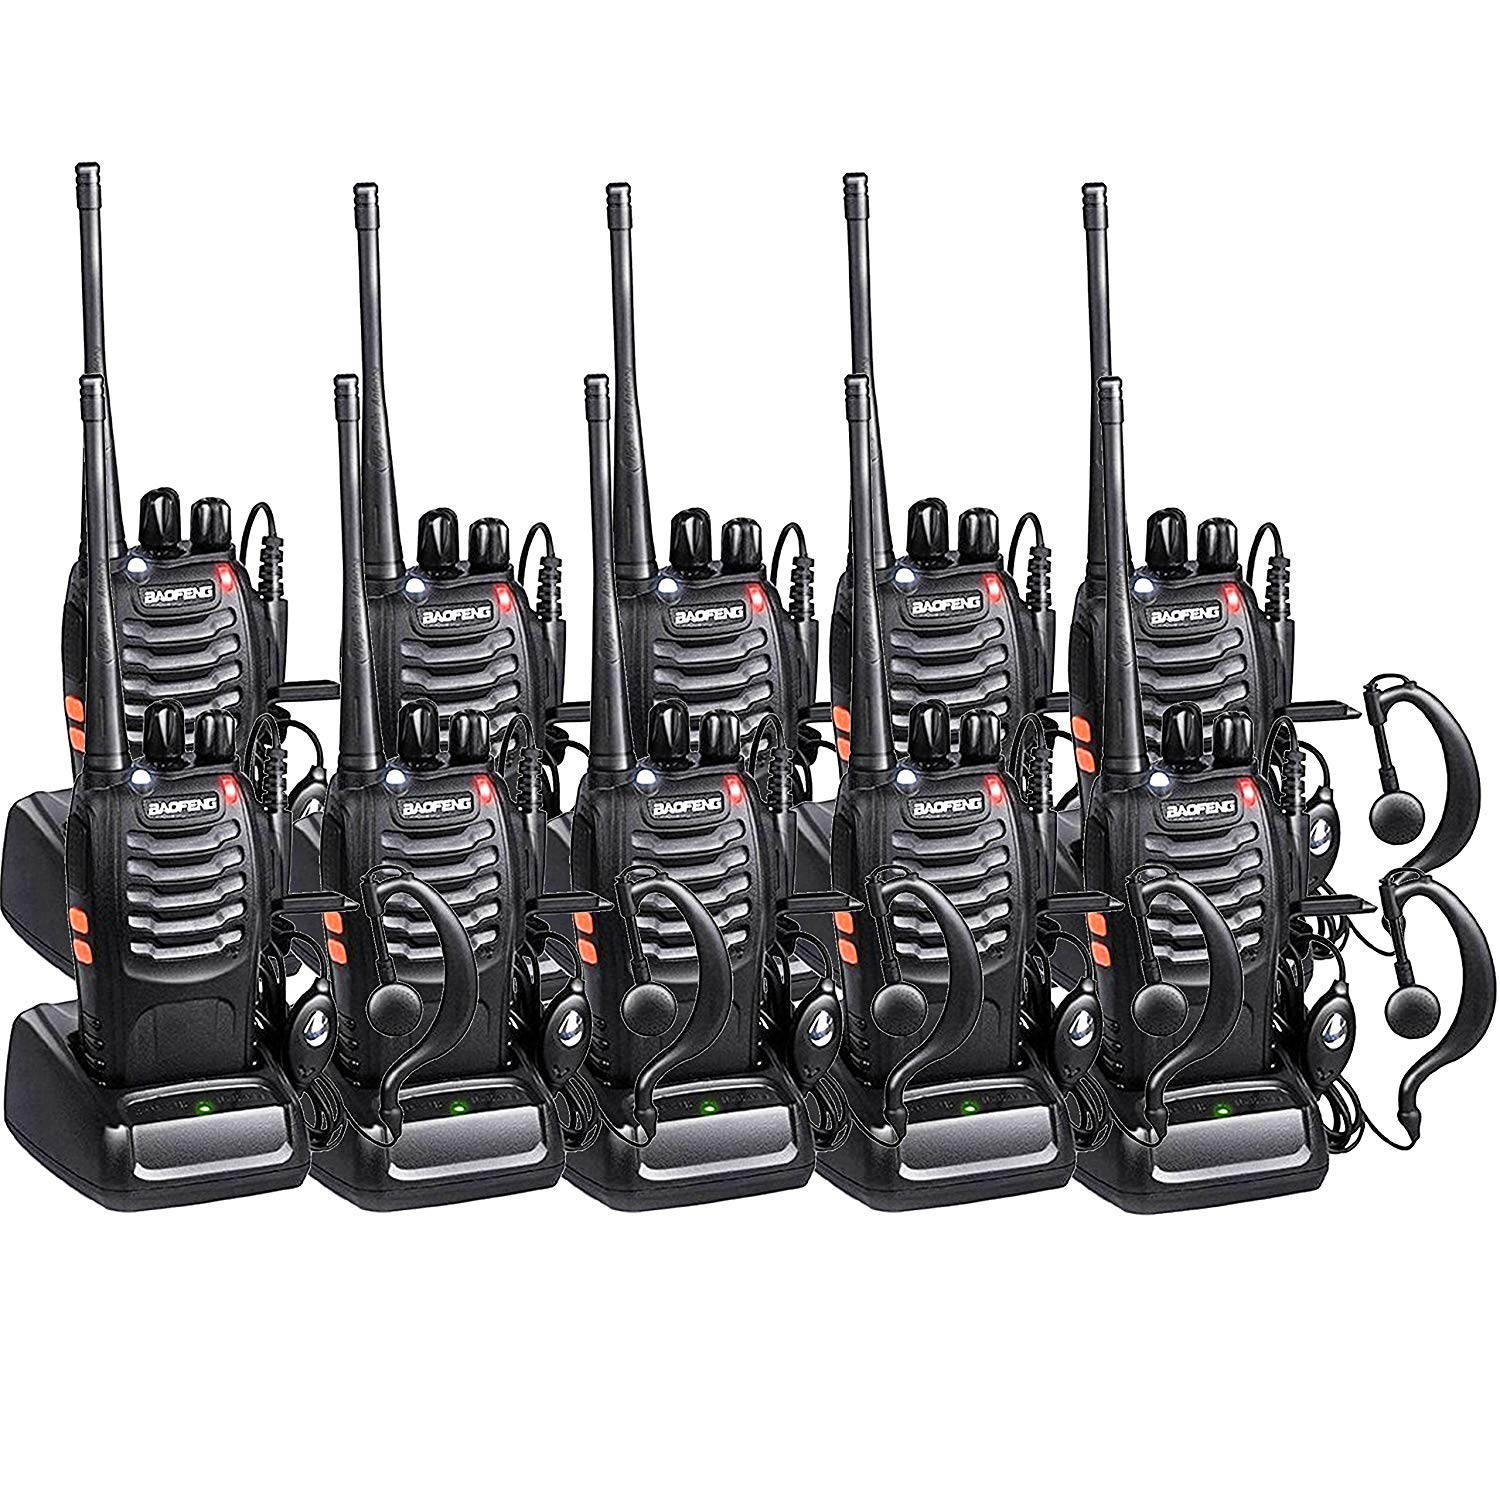 Baofeng Walkie Talkies BF-888s Radios Long Range with Earpiece Mic 5W 2 Way Radio UHF Two Way Radio Handheld Reachargeble Ham Transceiver with Antenna Headsets Microphone 10 Pack